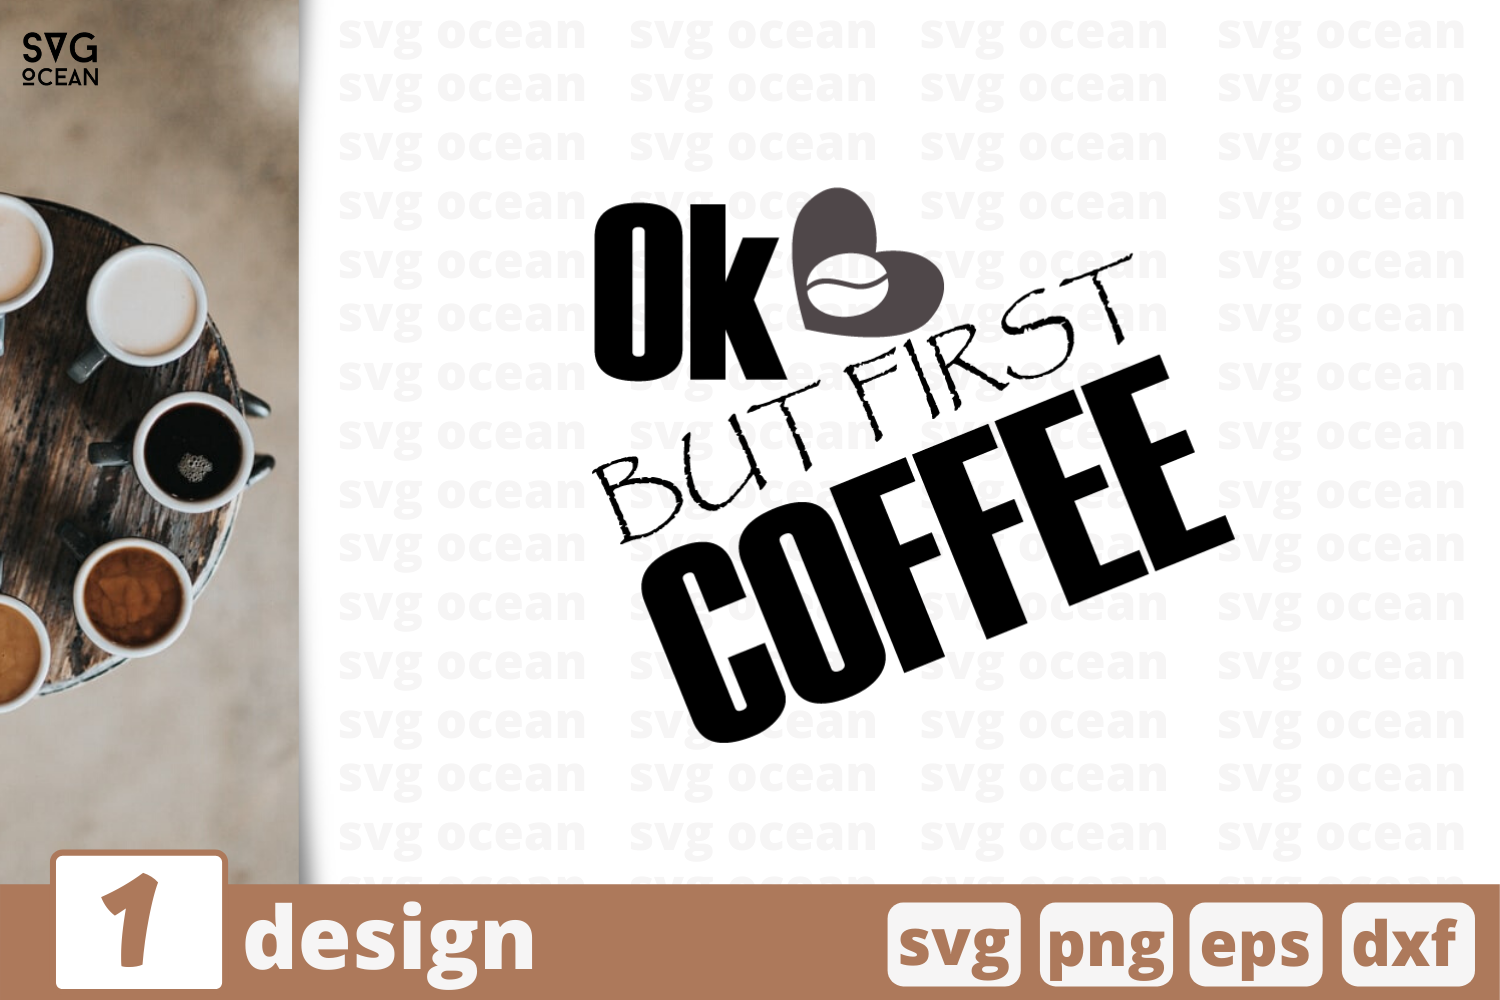 1 First Coffee Svg Bundle Quotes Cricut Svg By Svgocean